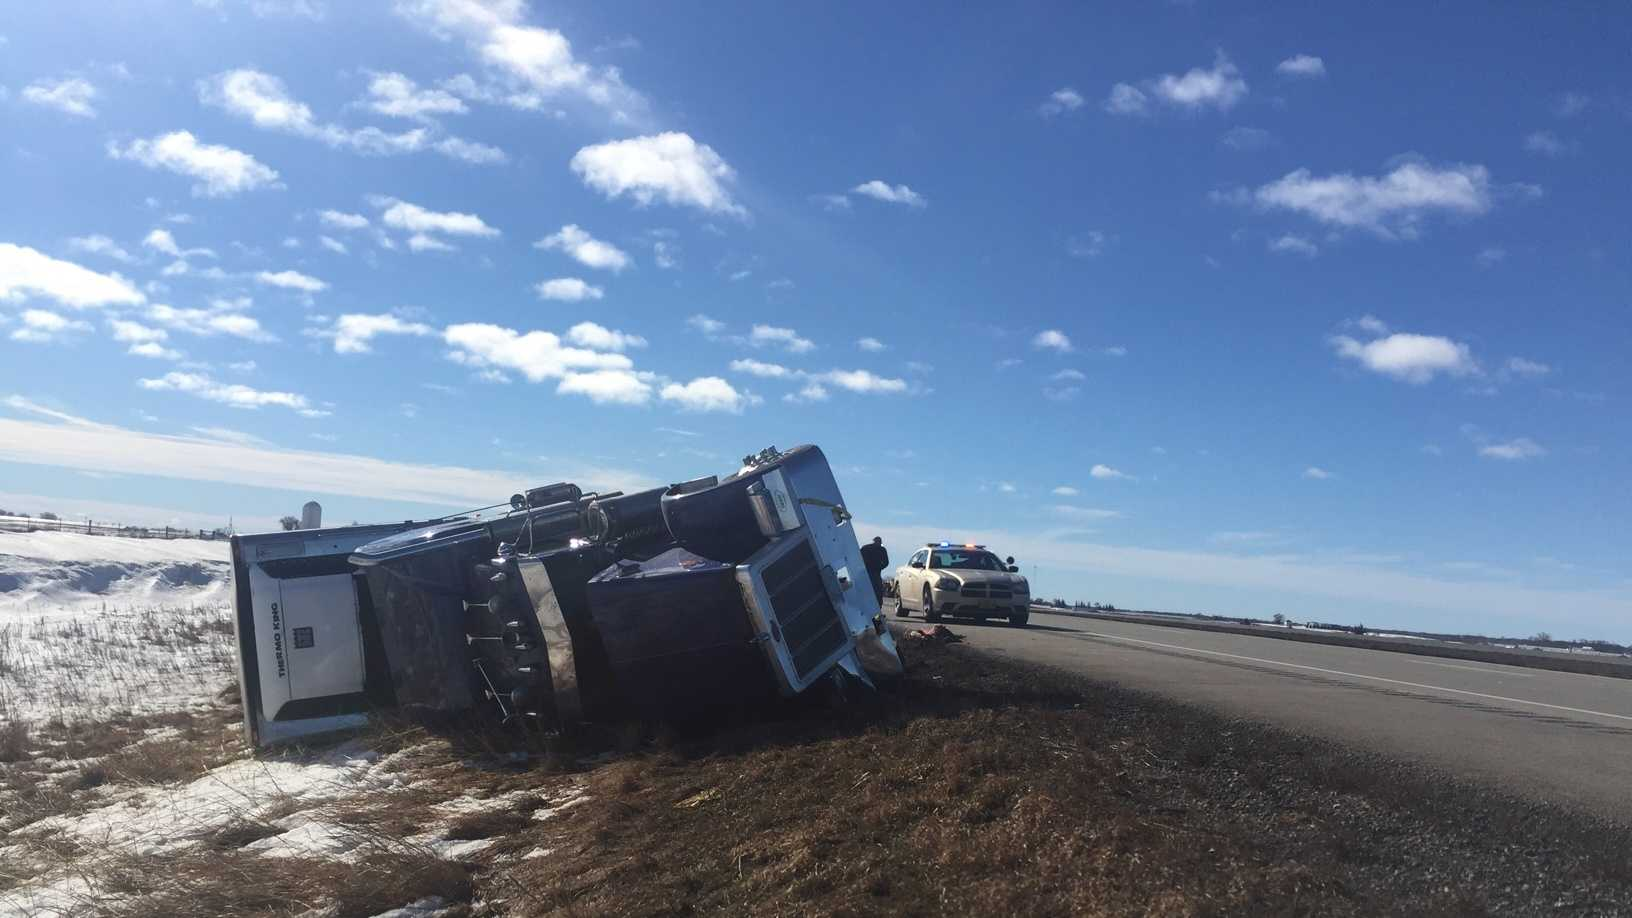 Semi rollover crash caused by high winds near Ellsworth, Iowa.